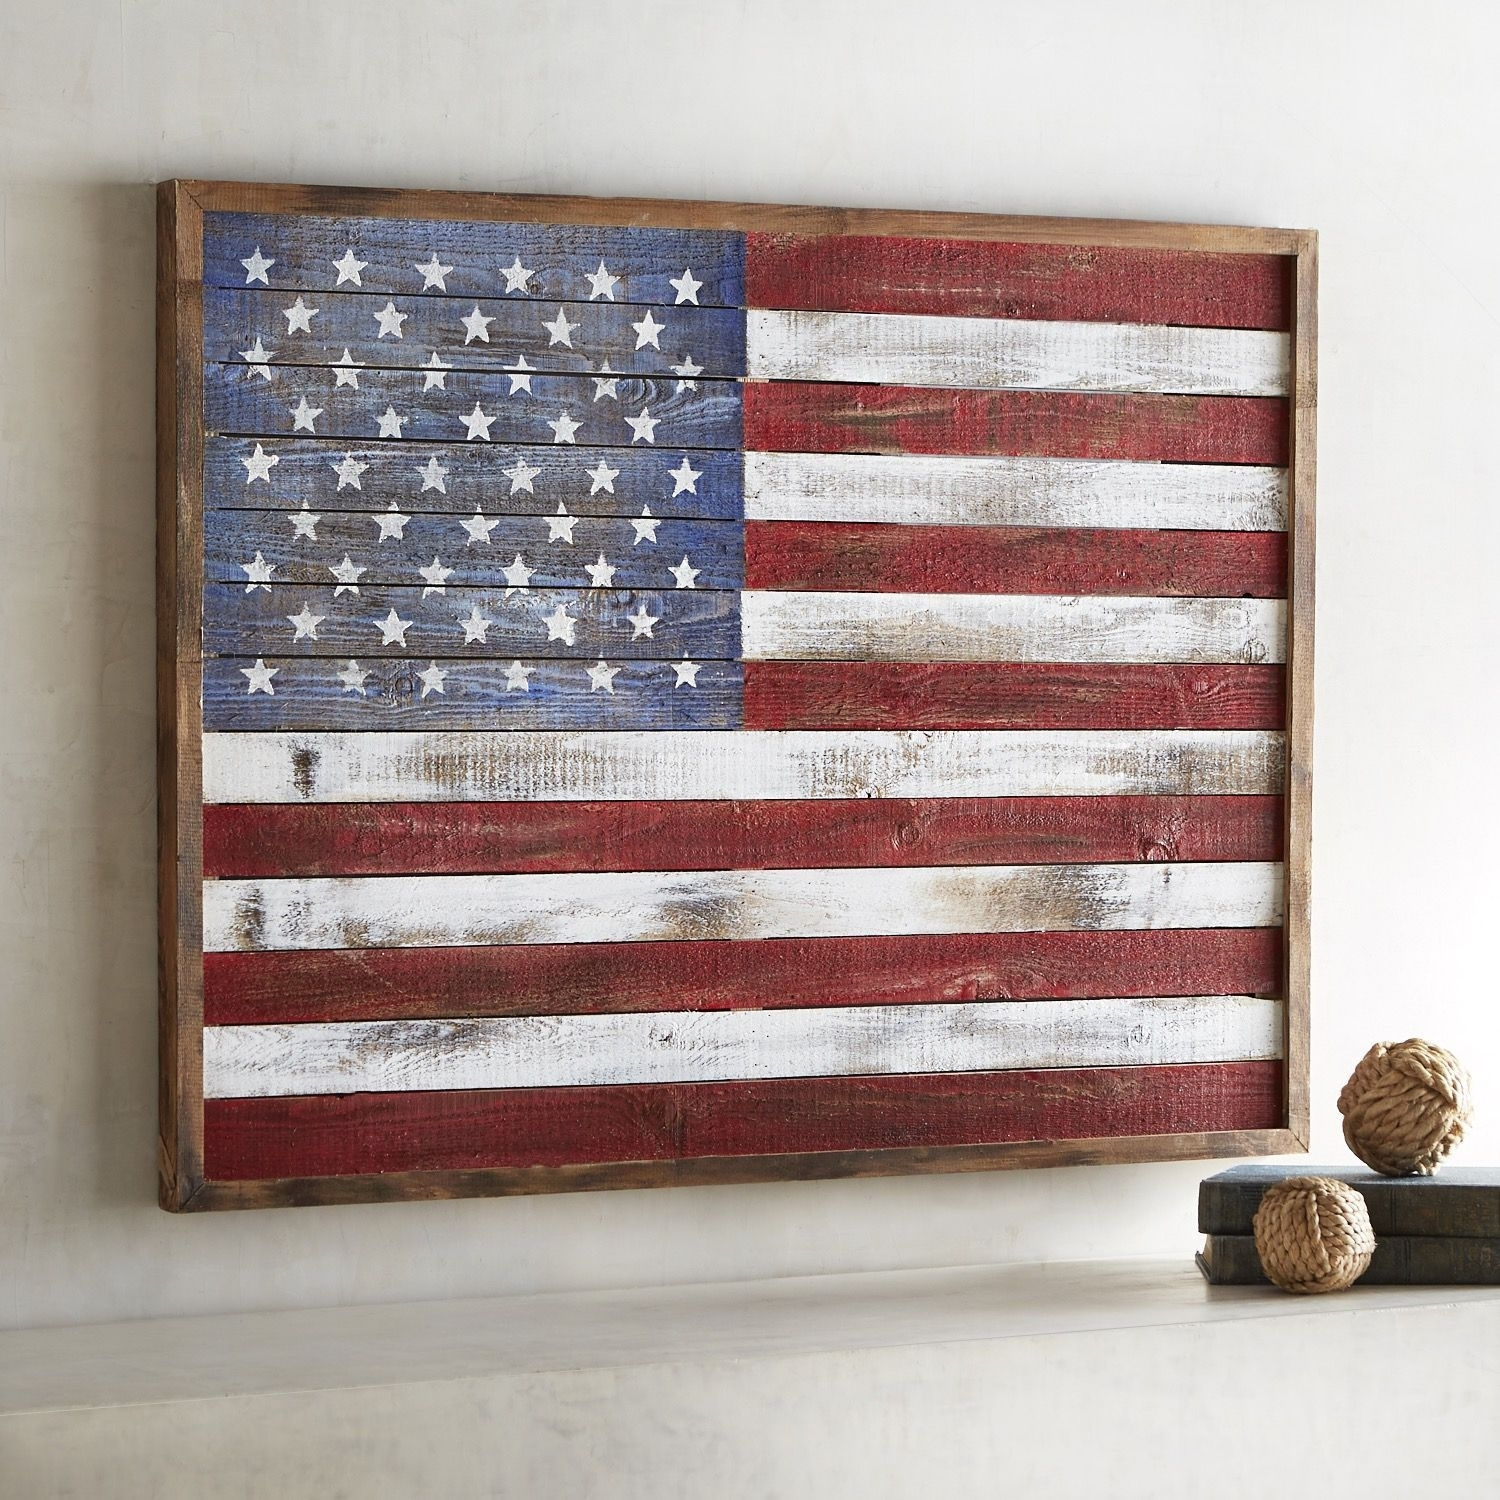 Shiplap American Flag Wall Decor | Products | Pinterest | Wall Decor intended for American Flag Wall Art (Image 17 of 20)